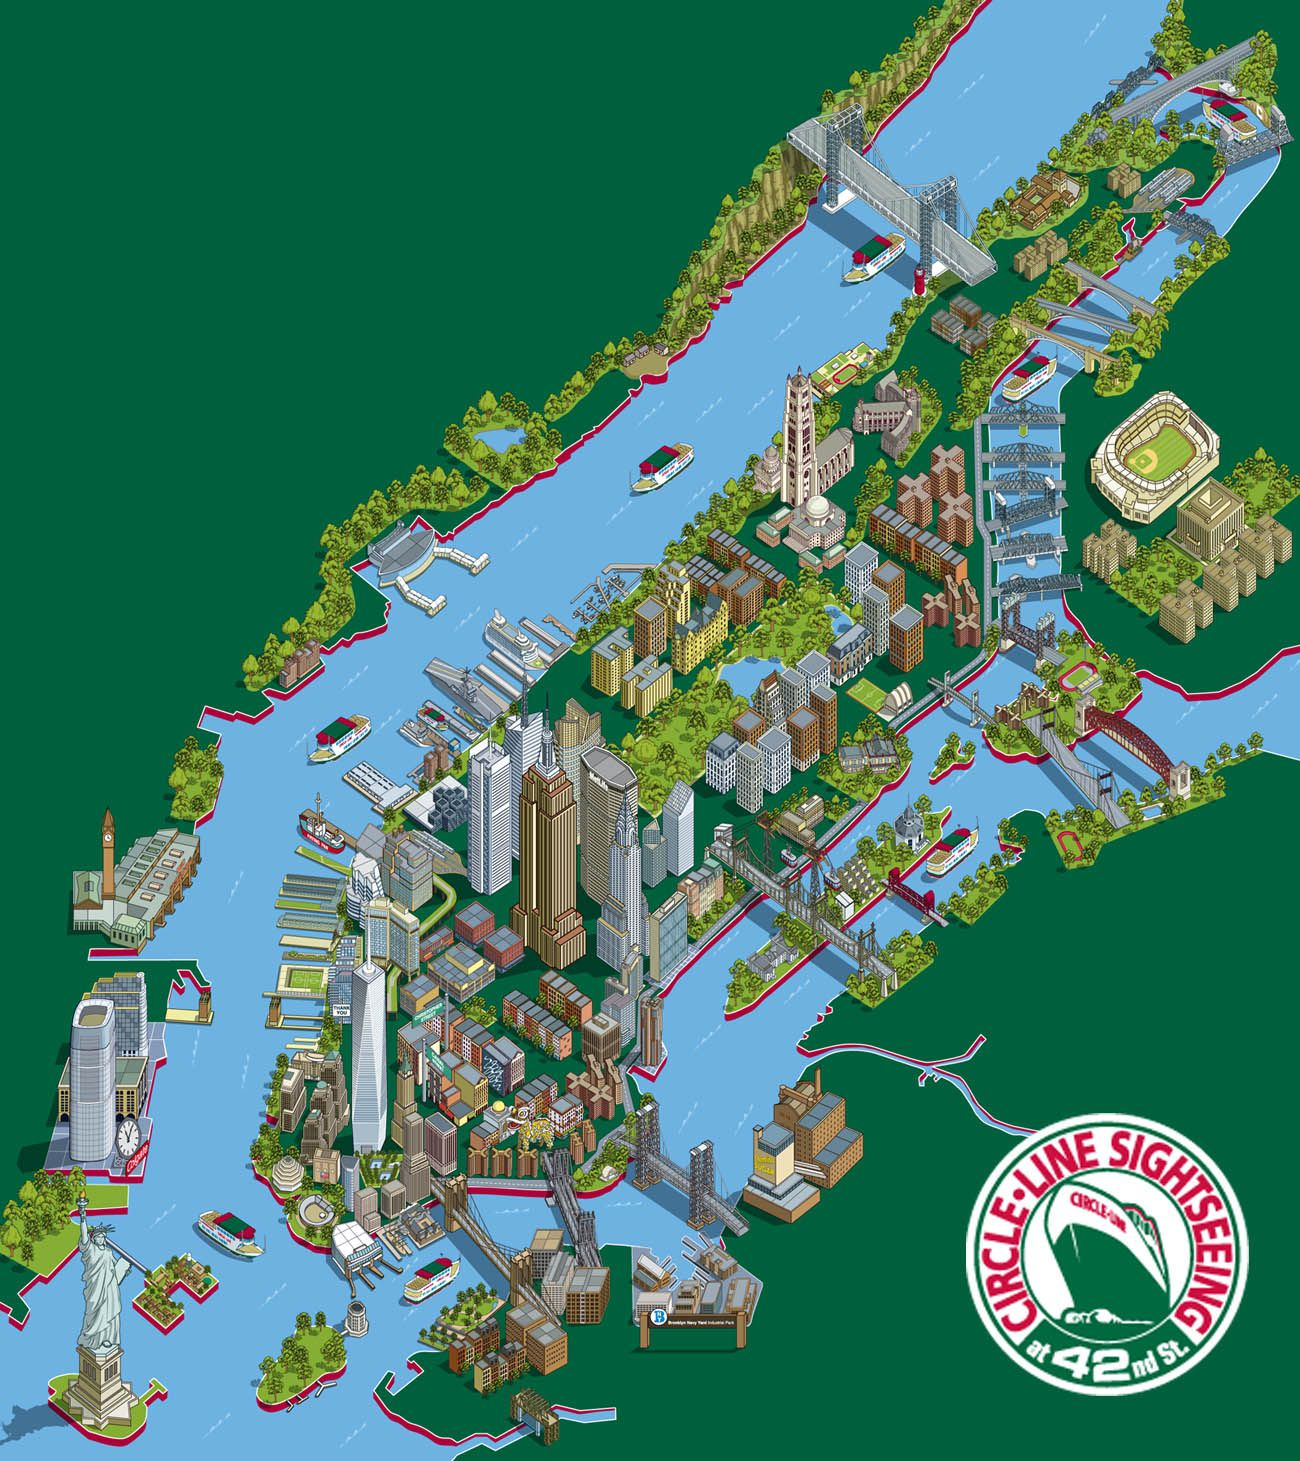 101 new york attractions map for circle line sightseeing cruises